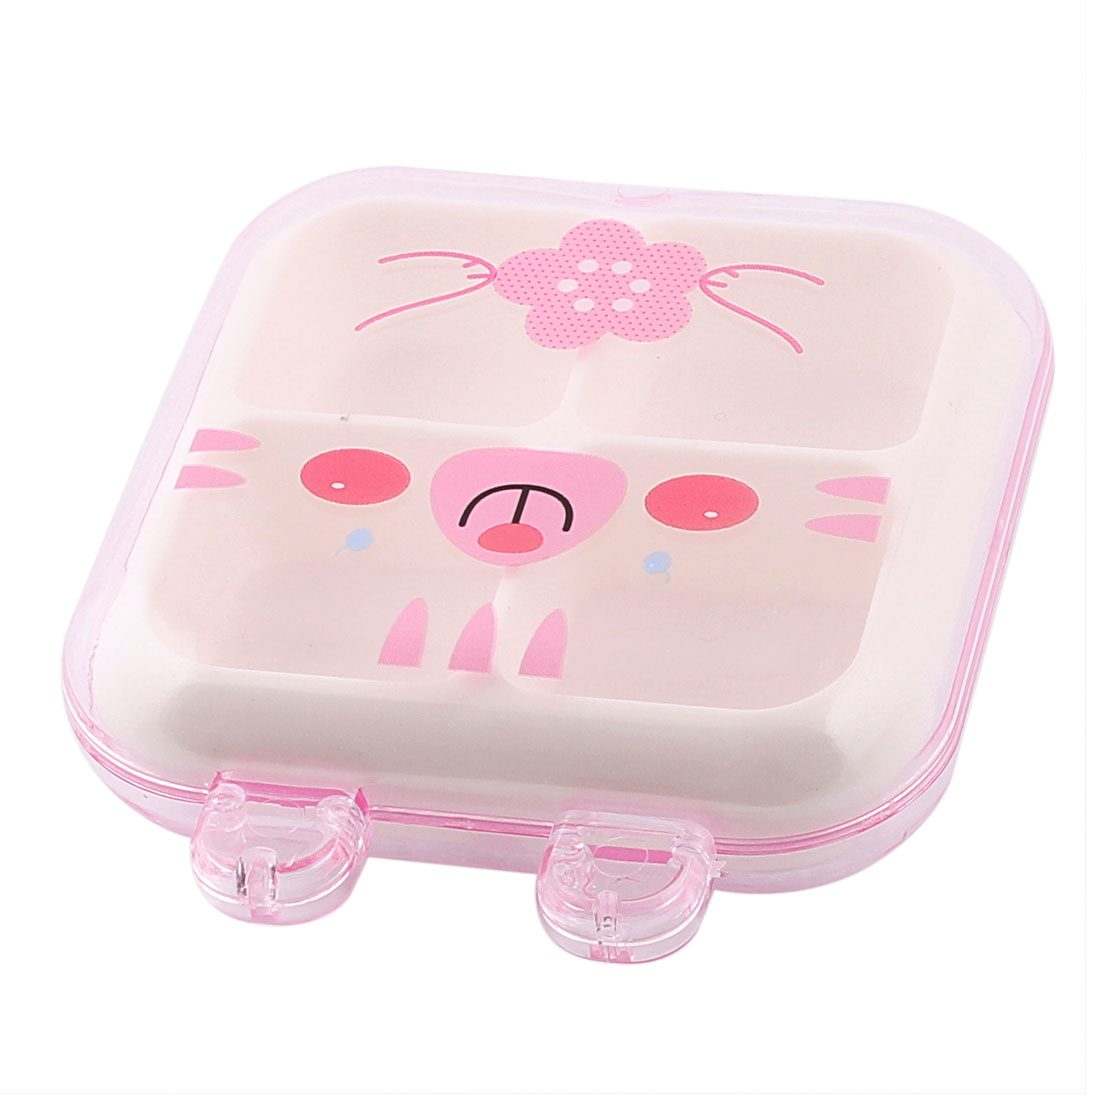 Plastic Cat Pattern 4 Slots Storage Box Case Container Organizer Clear Pink